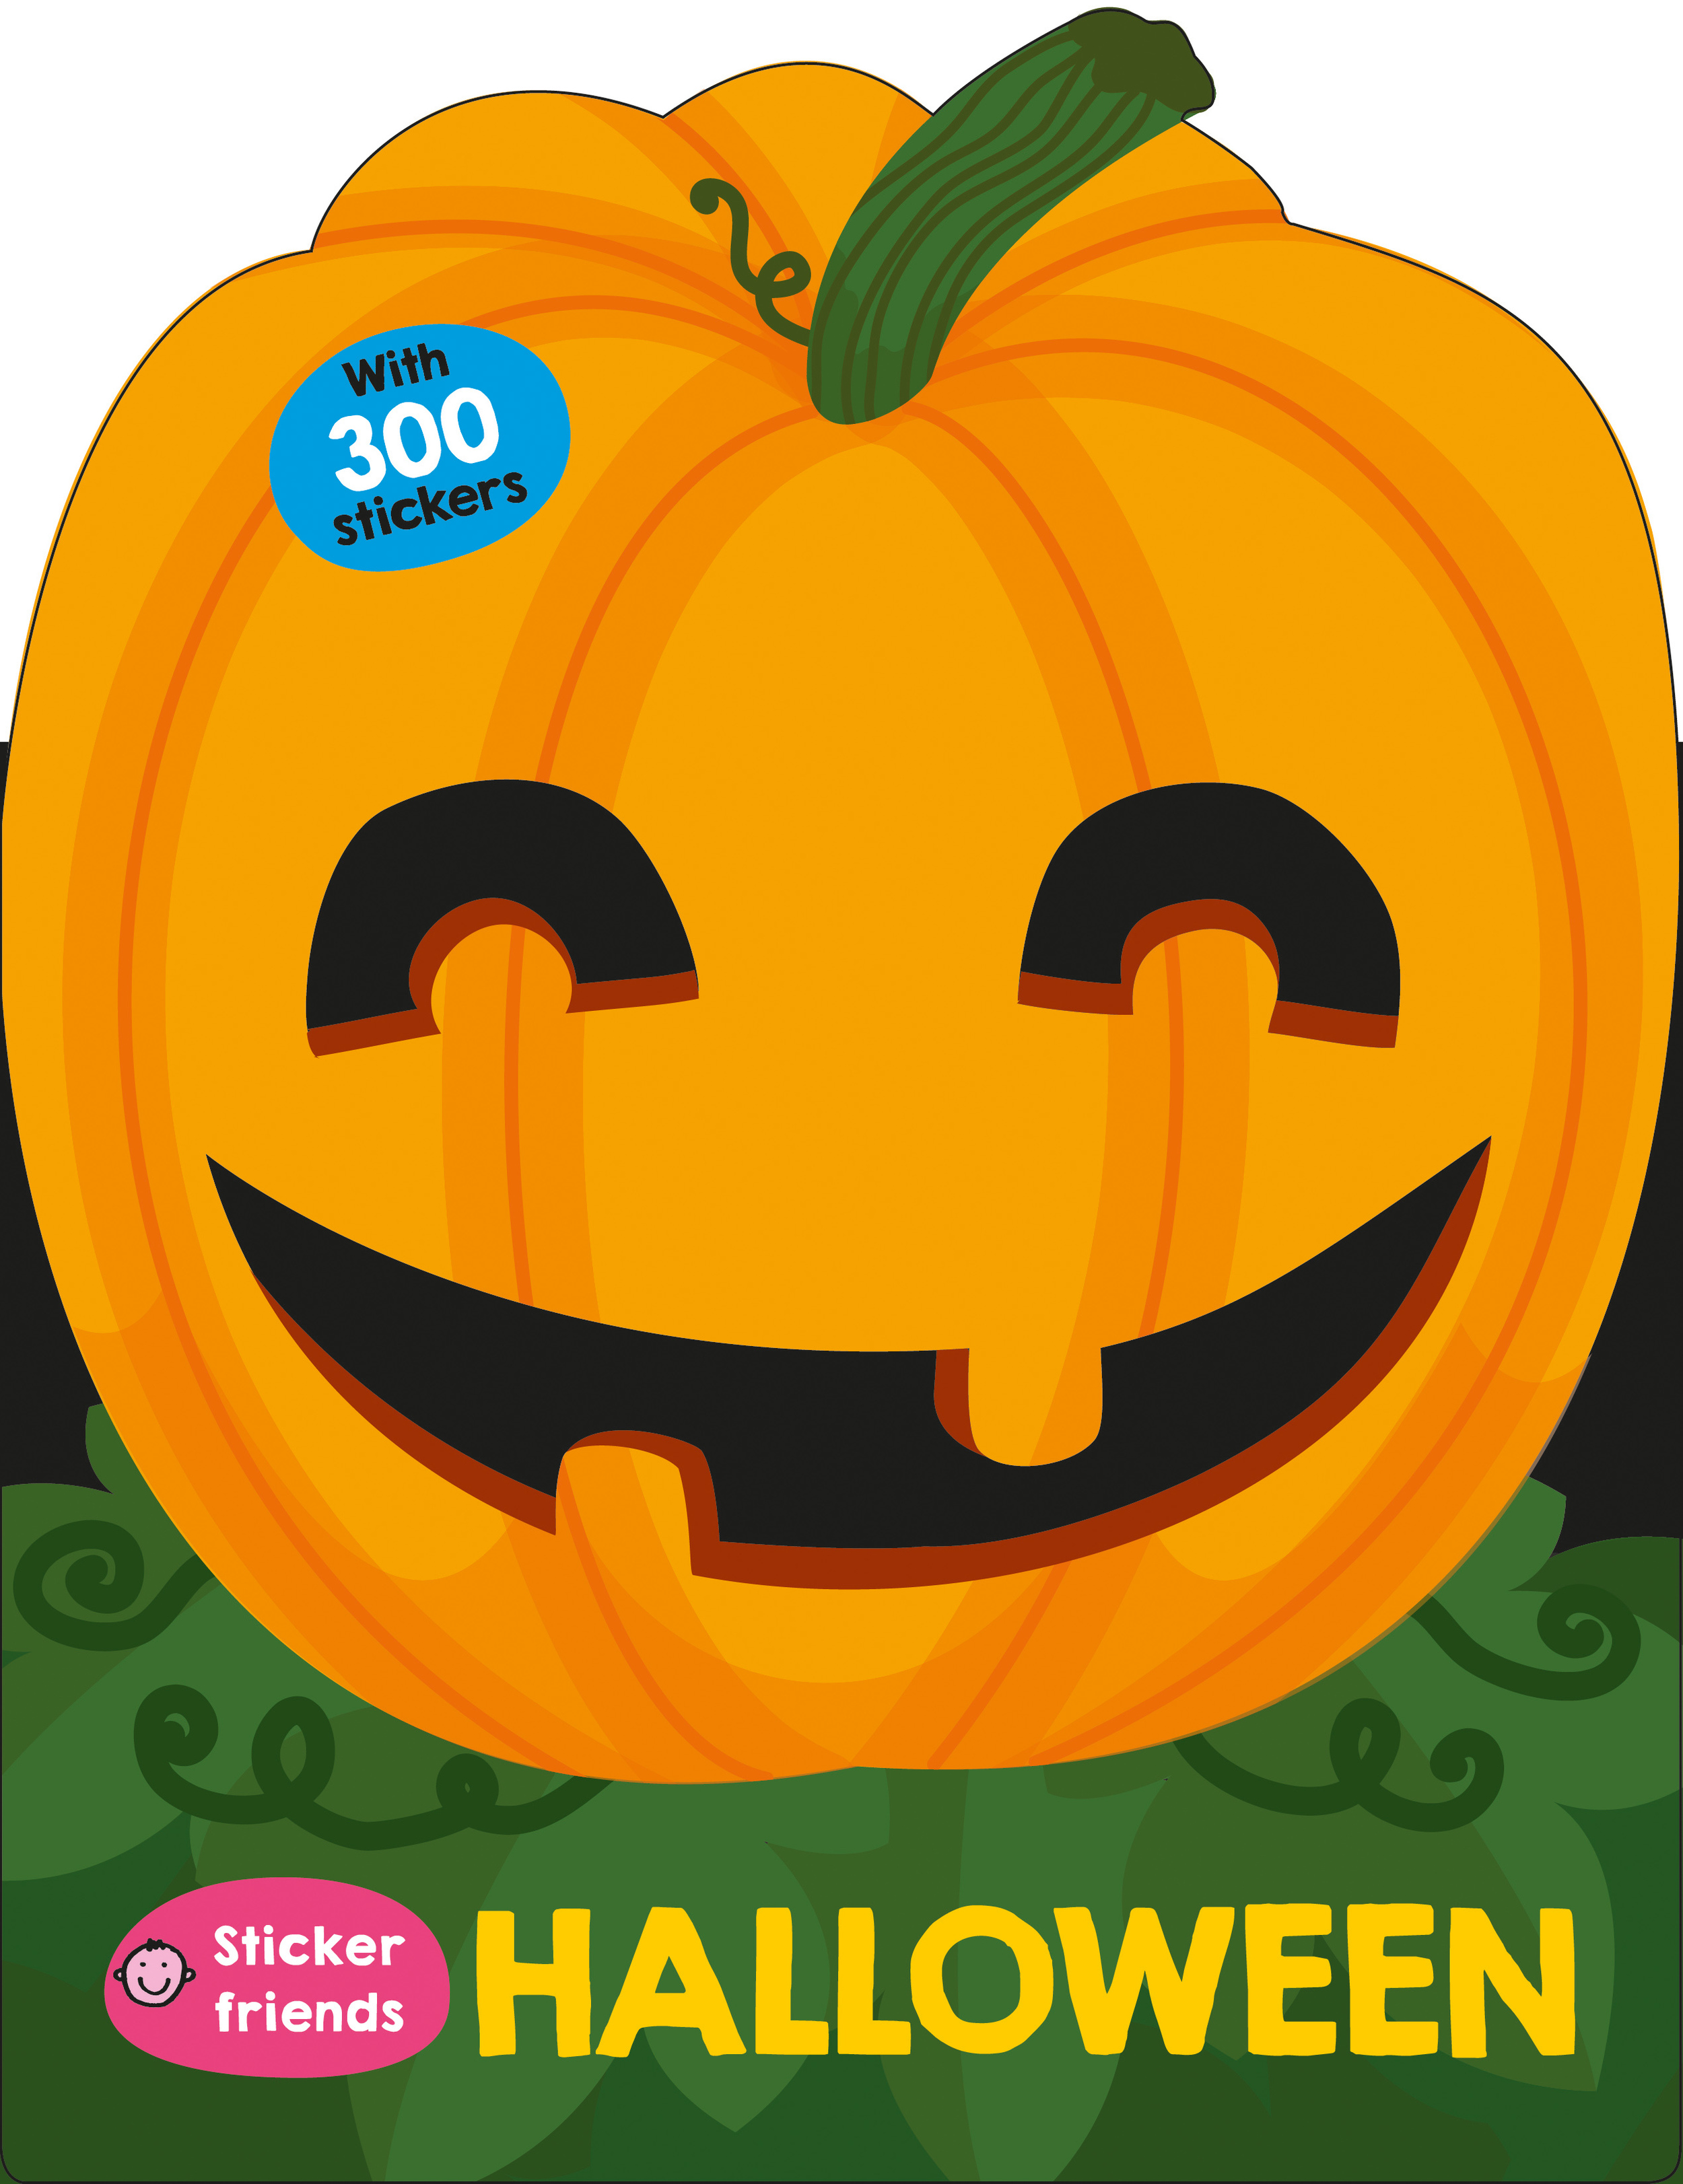 Pumpkin_StickerCover_ExtraTooth.jpg